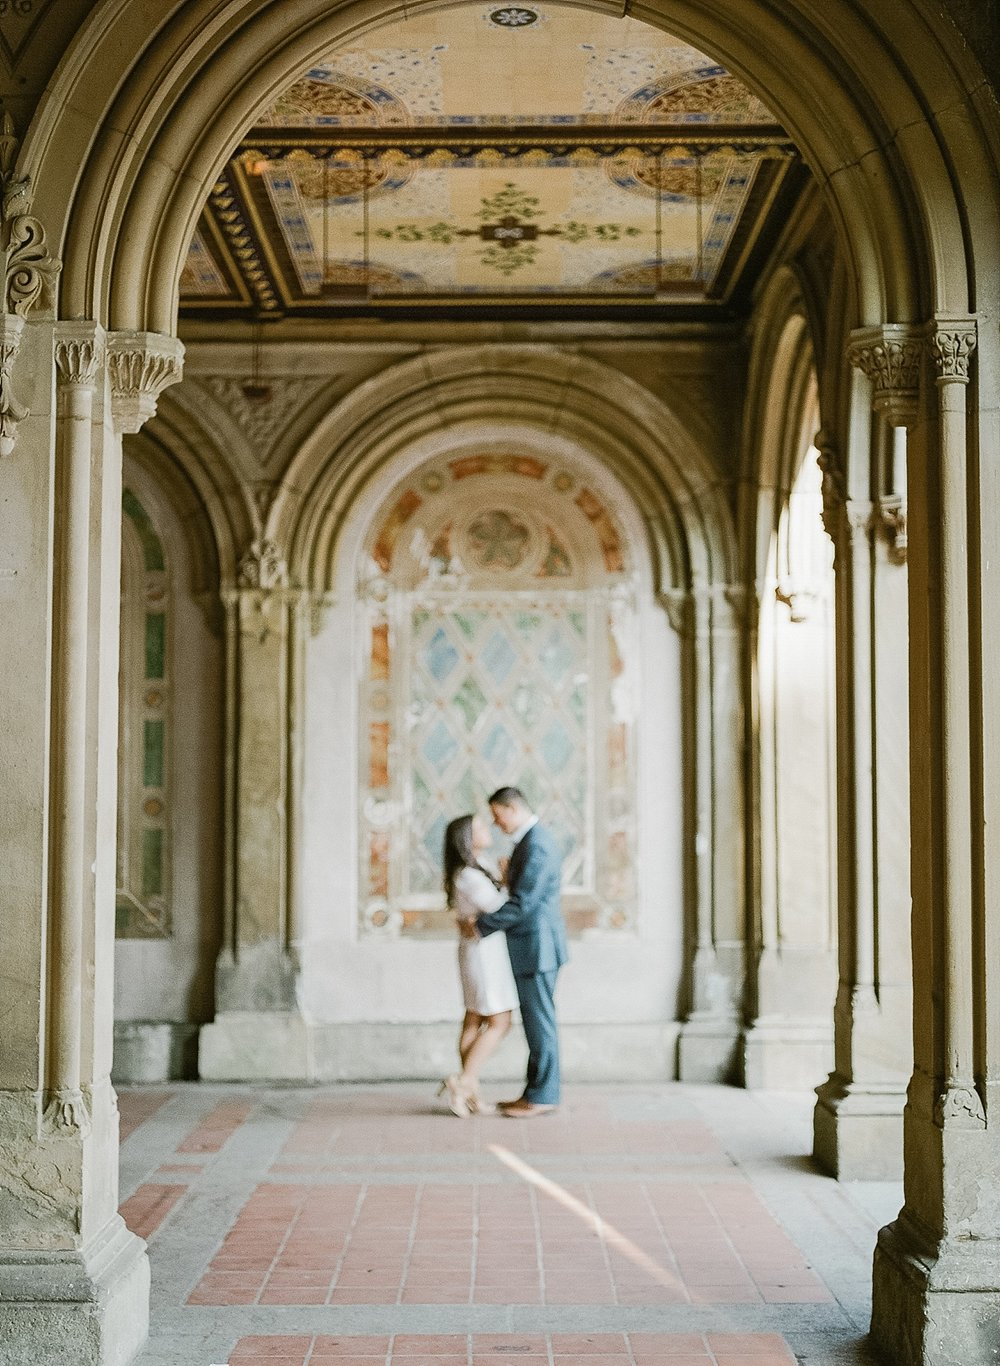 Kimberly Florence Photography_Loeb Boathouse_Central Park Engagement Session_New York City Wedding Photographer_NYC wedding_new york wedding_0103.jpg